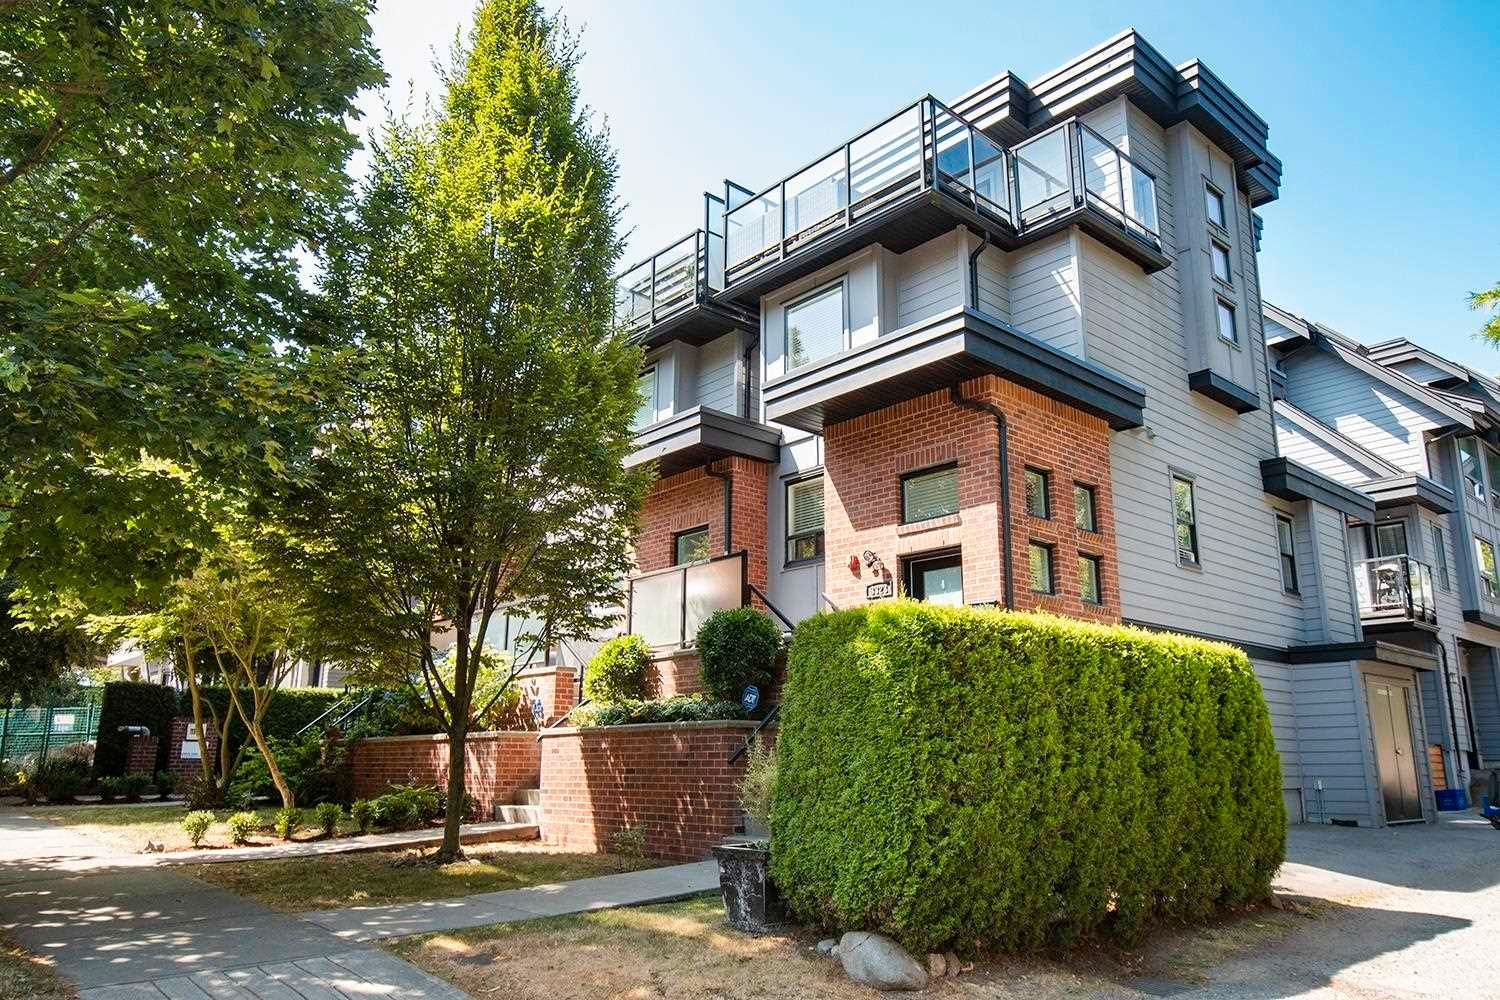 Main Photo: 3337 WINDSOR STREET in Vancouver: Fraser VE Townhouse for sale (Vancouver East)  : MLS®# R2605481